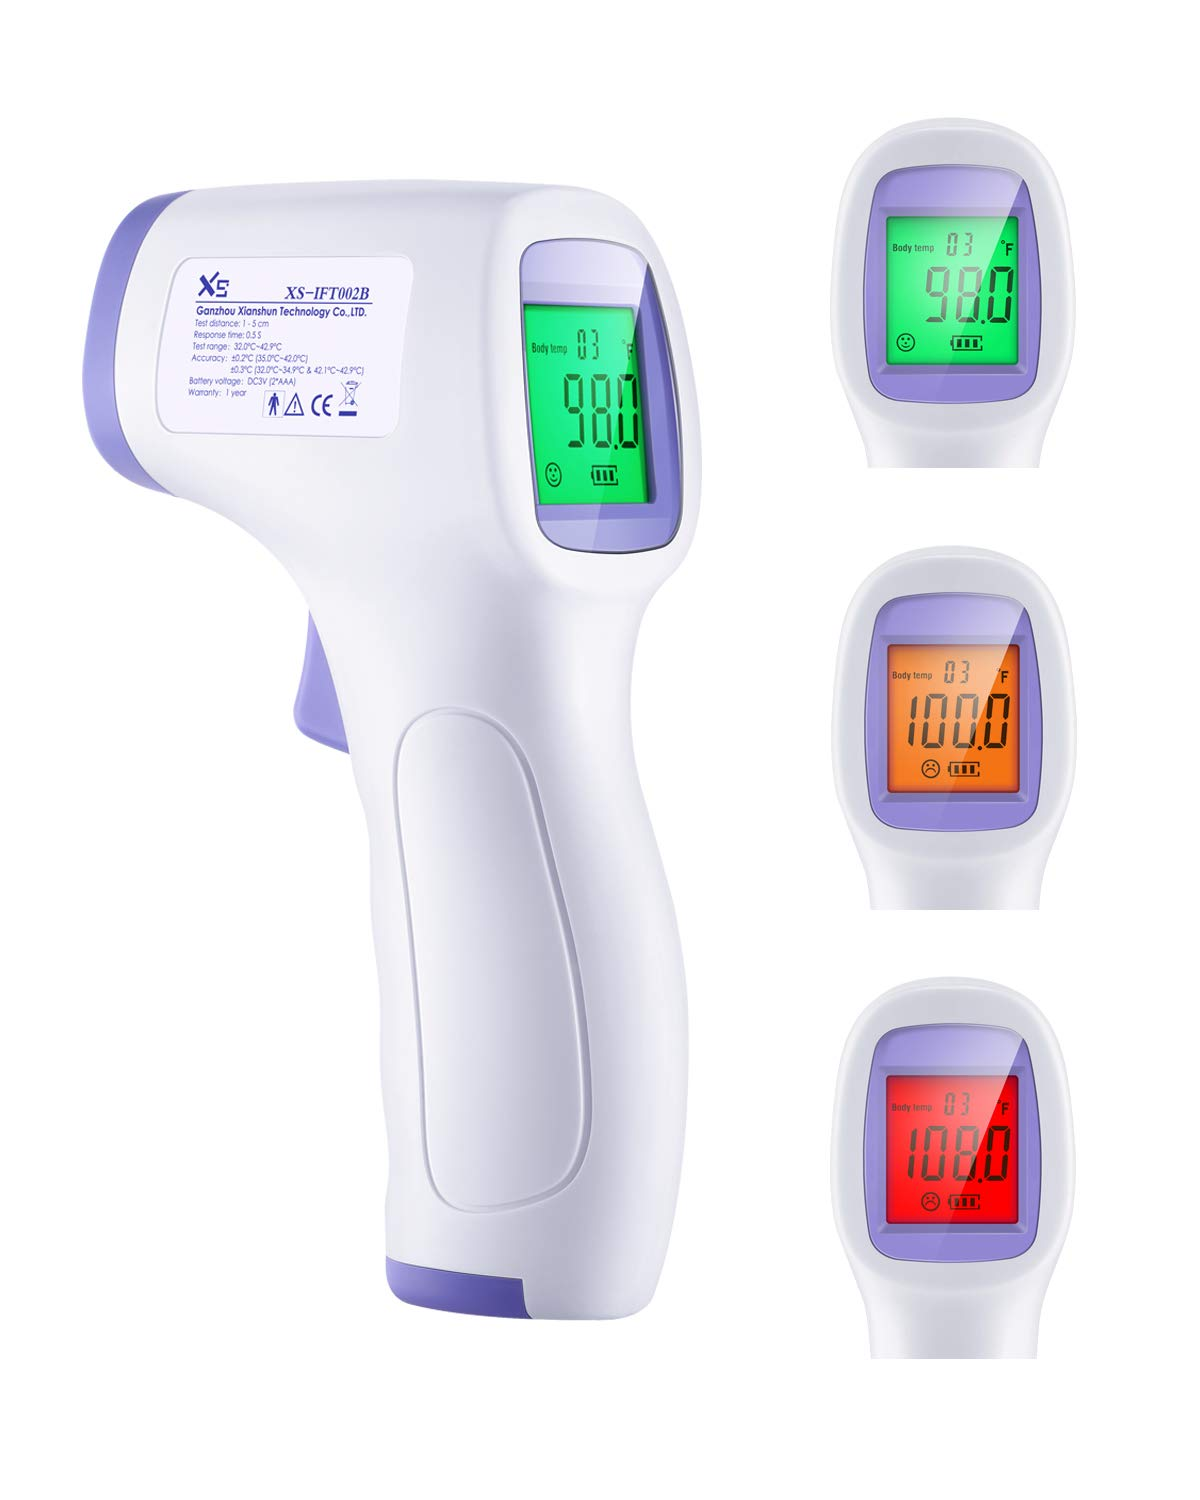 3 Color Screen,High Temperature Alarm Forehead Infrared Thermometer for Kids /& Adults Accurate Instant Readings Forehead Thermometer with LCD Display